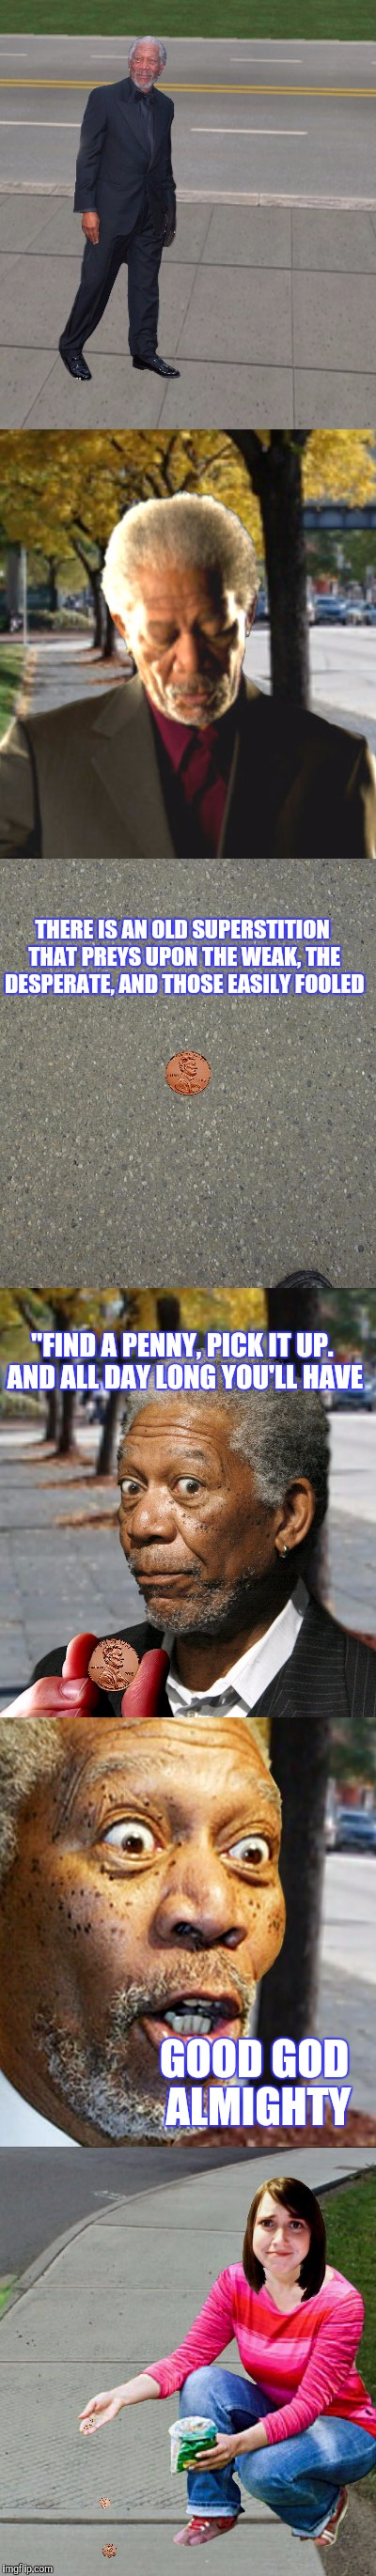 "LEAVING COPPER BREADCRUMBS | THERE IS AN OLD SUPERSTITION THAT PREYS UPON THE WEAK, THE DESPERATE, AND THOSE EASILY FOOLED GOOD GOD ALMIGHTY ""FIND A PENNY, PICK IT UP. A 